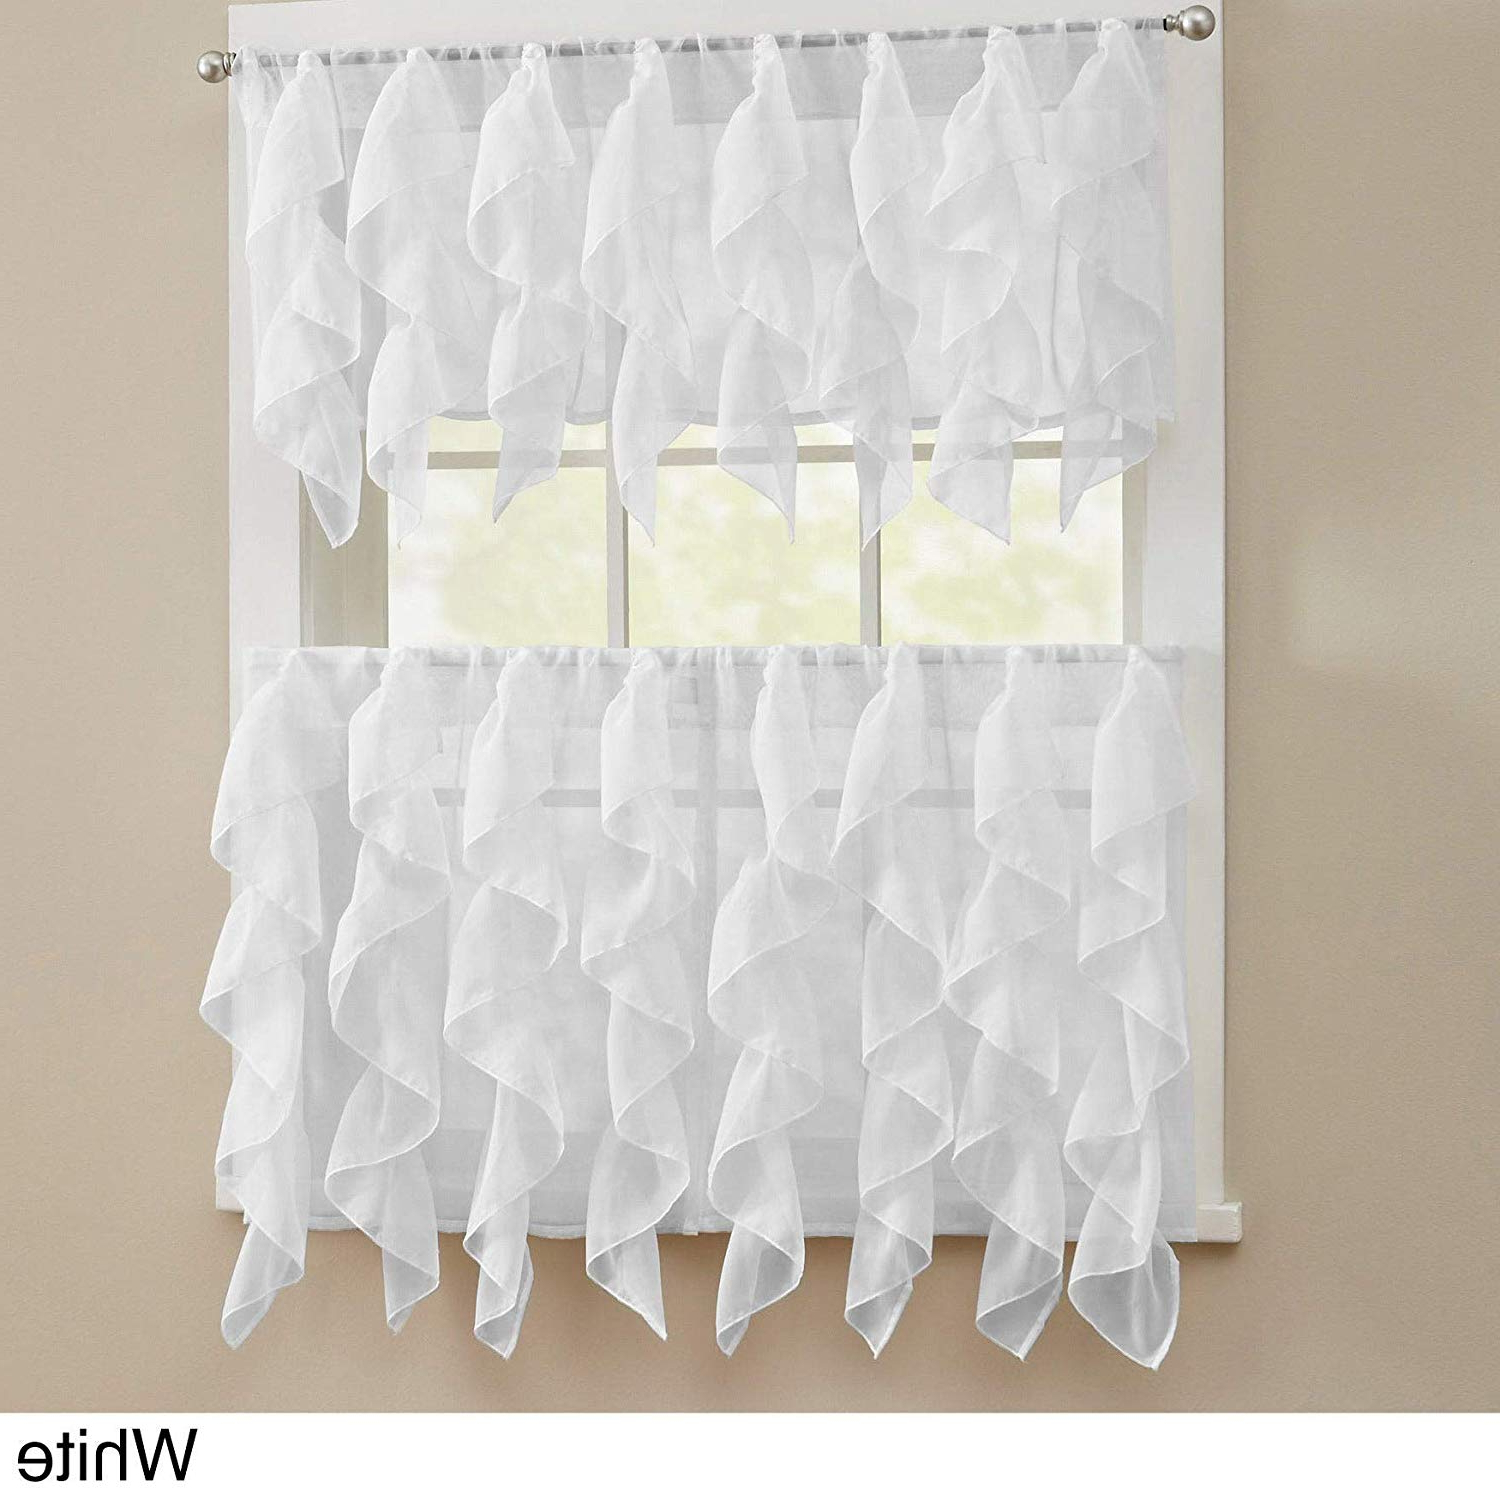 2021 Vertical Ruffled Waterfall Valance And Curtain Tiers For Bed Bath N More Chic Sheer Voile Vertical Ruffled Tier Window Curtain Valance And Tier White 56 X (View 11 of 20)